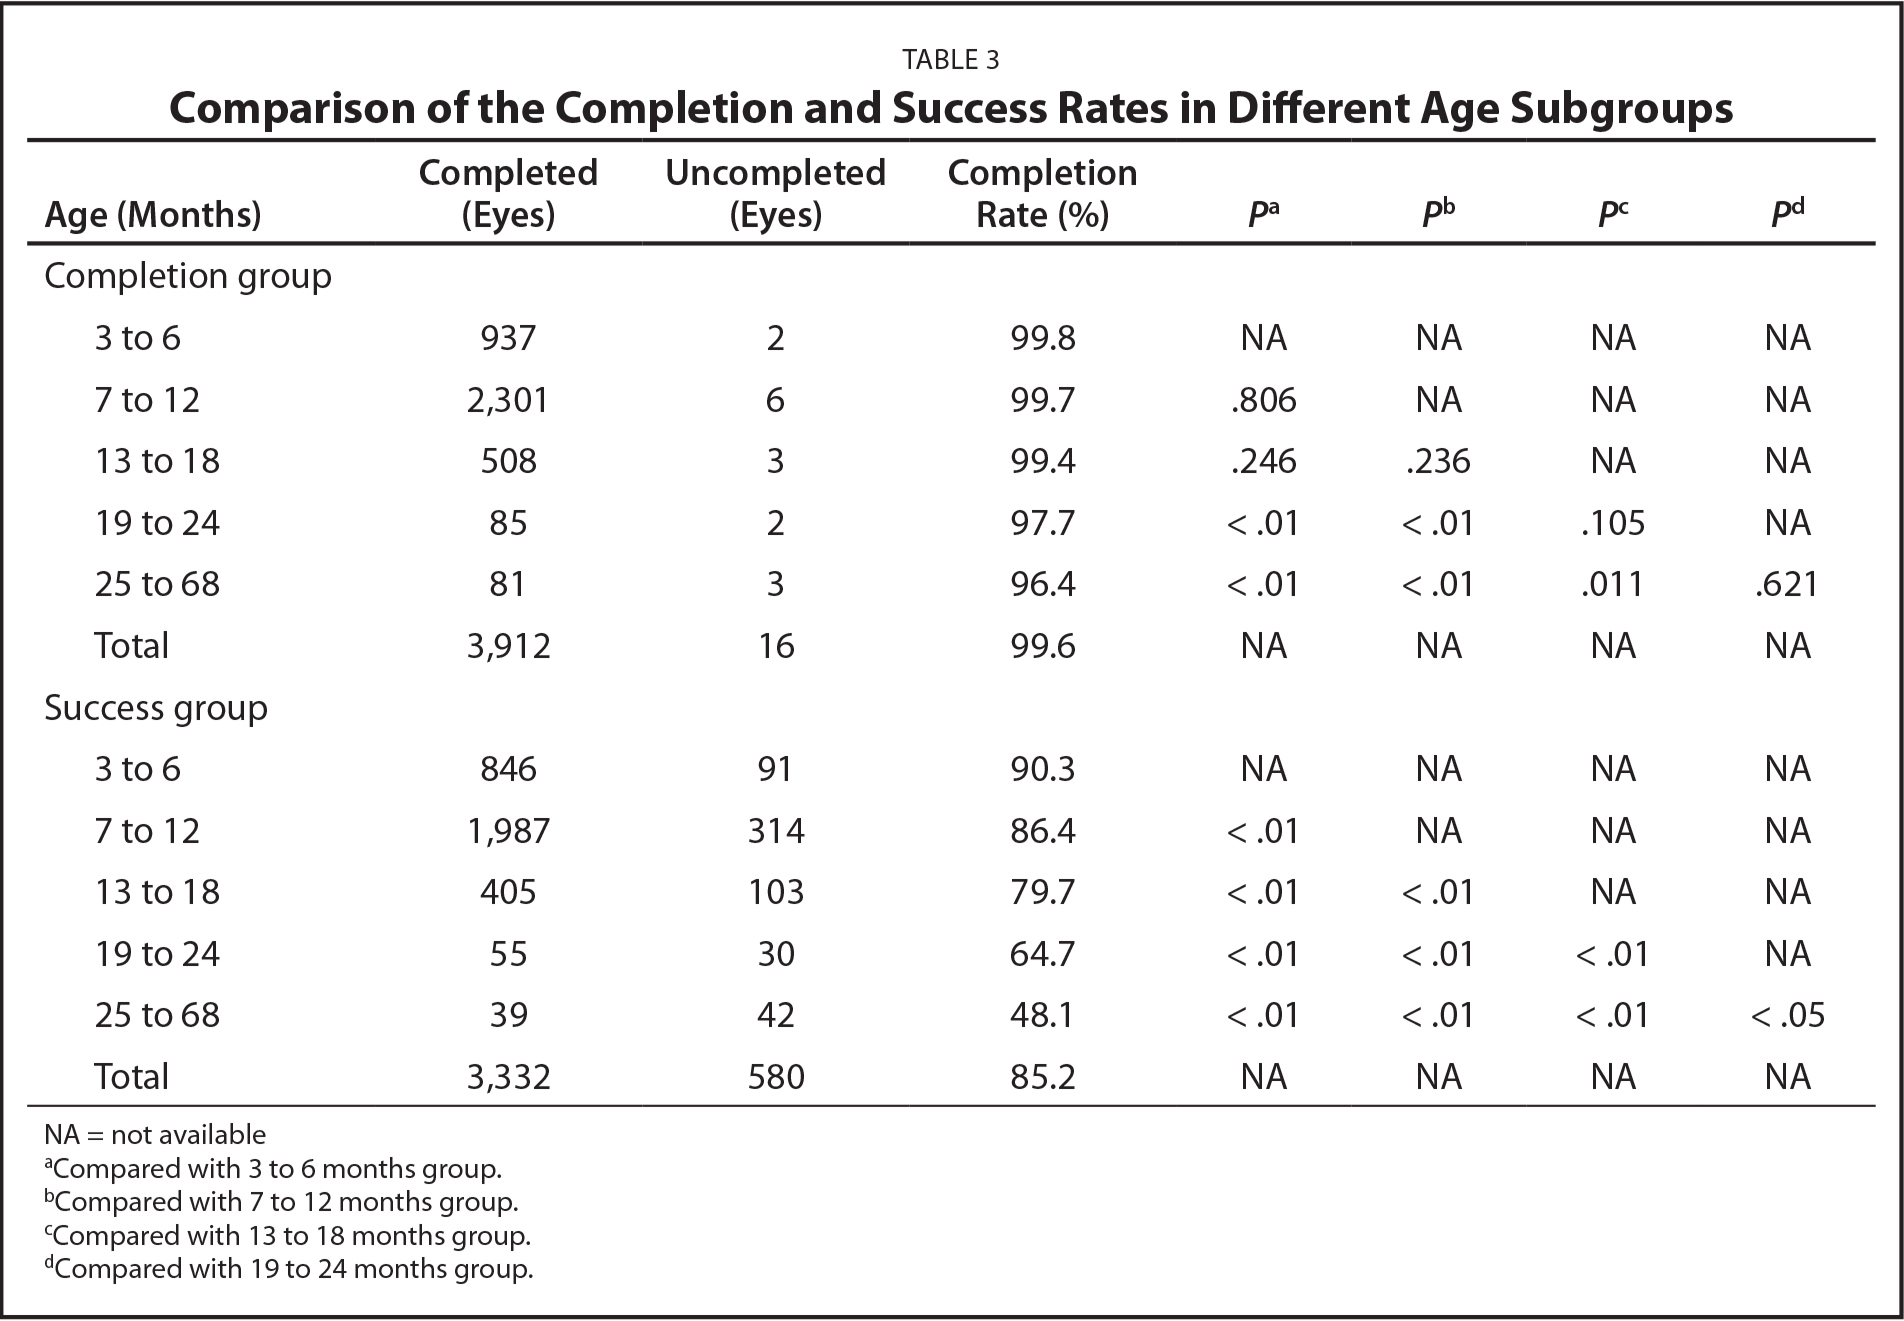 Comparison of the Completion and Success Rates in Different Age Subgroups